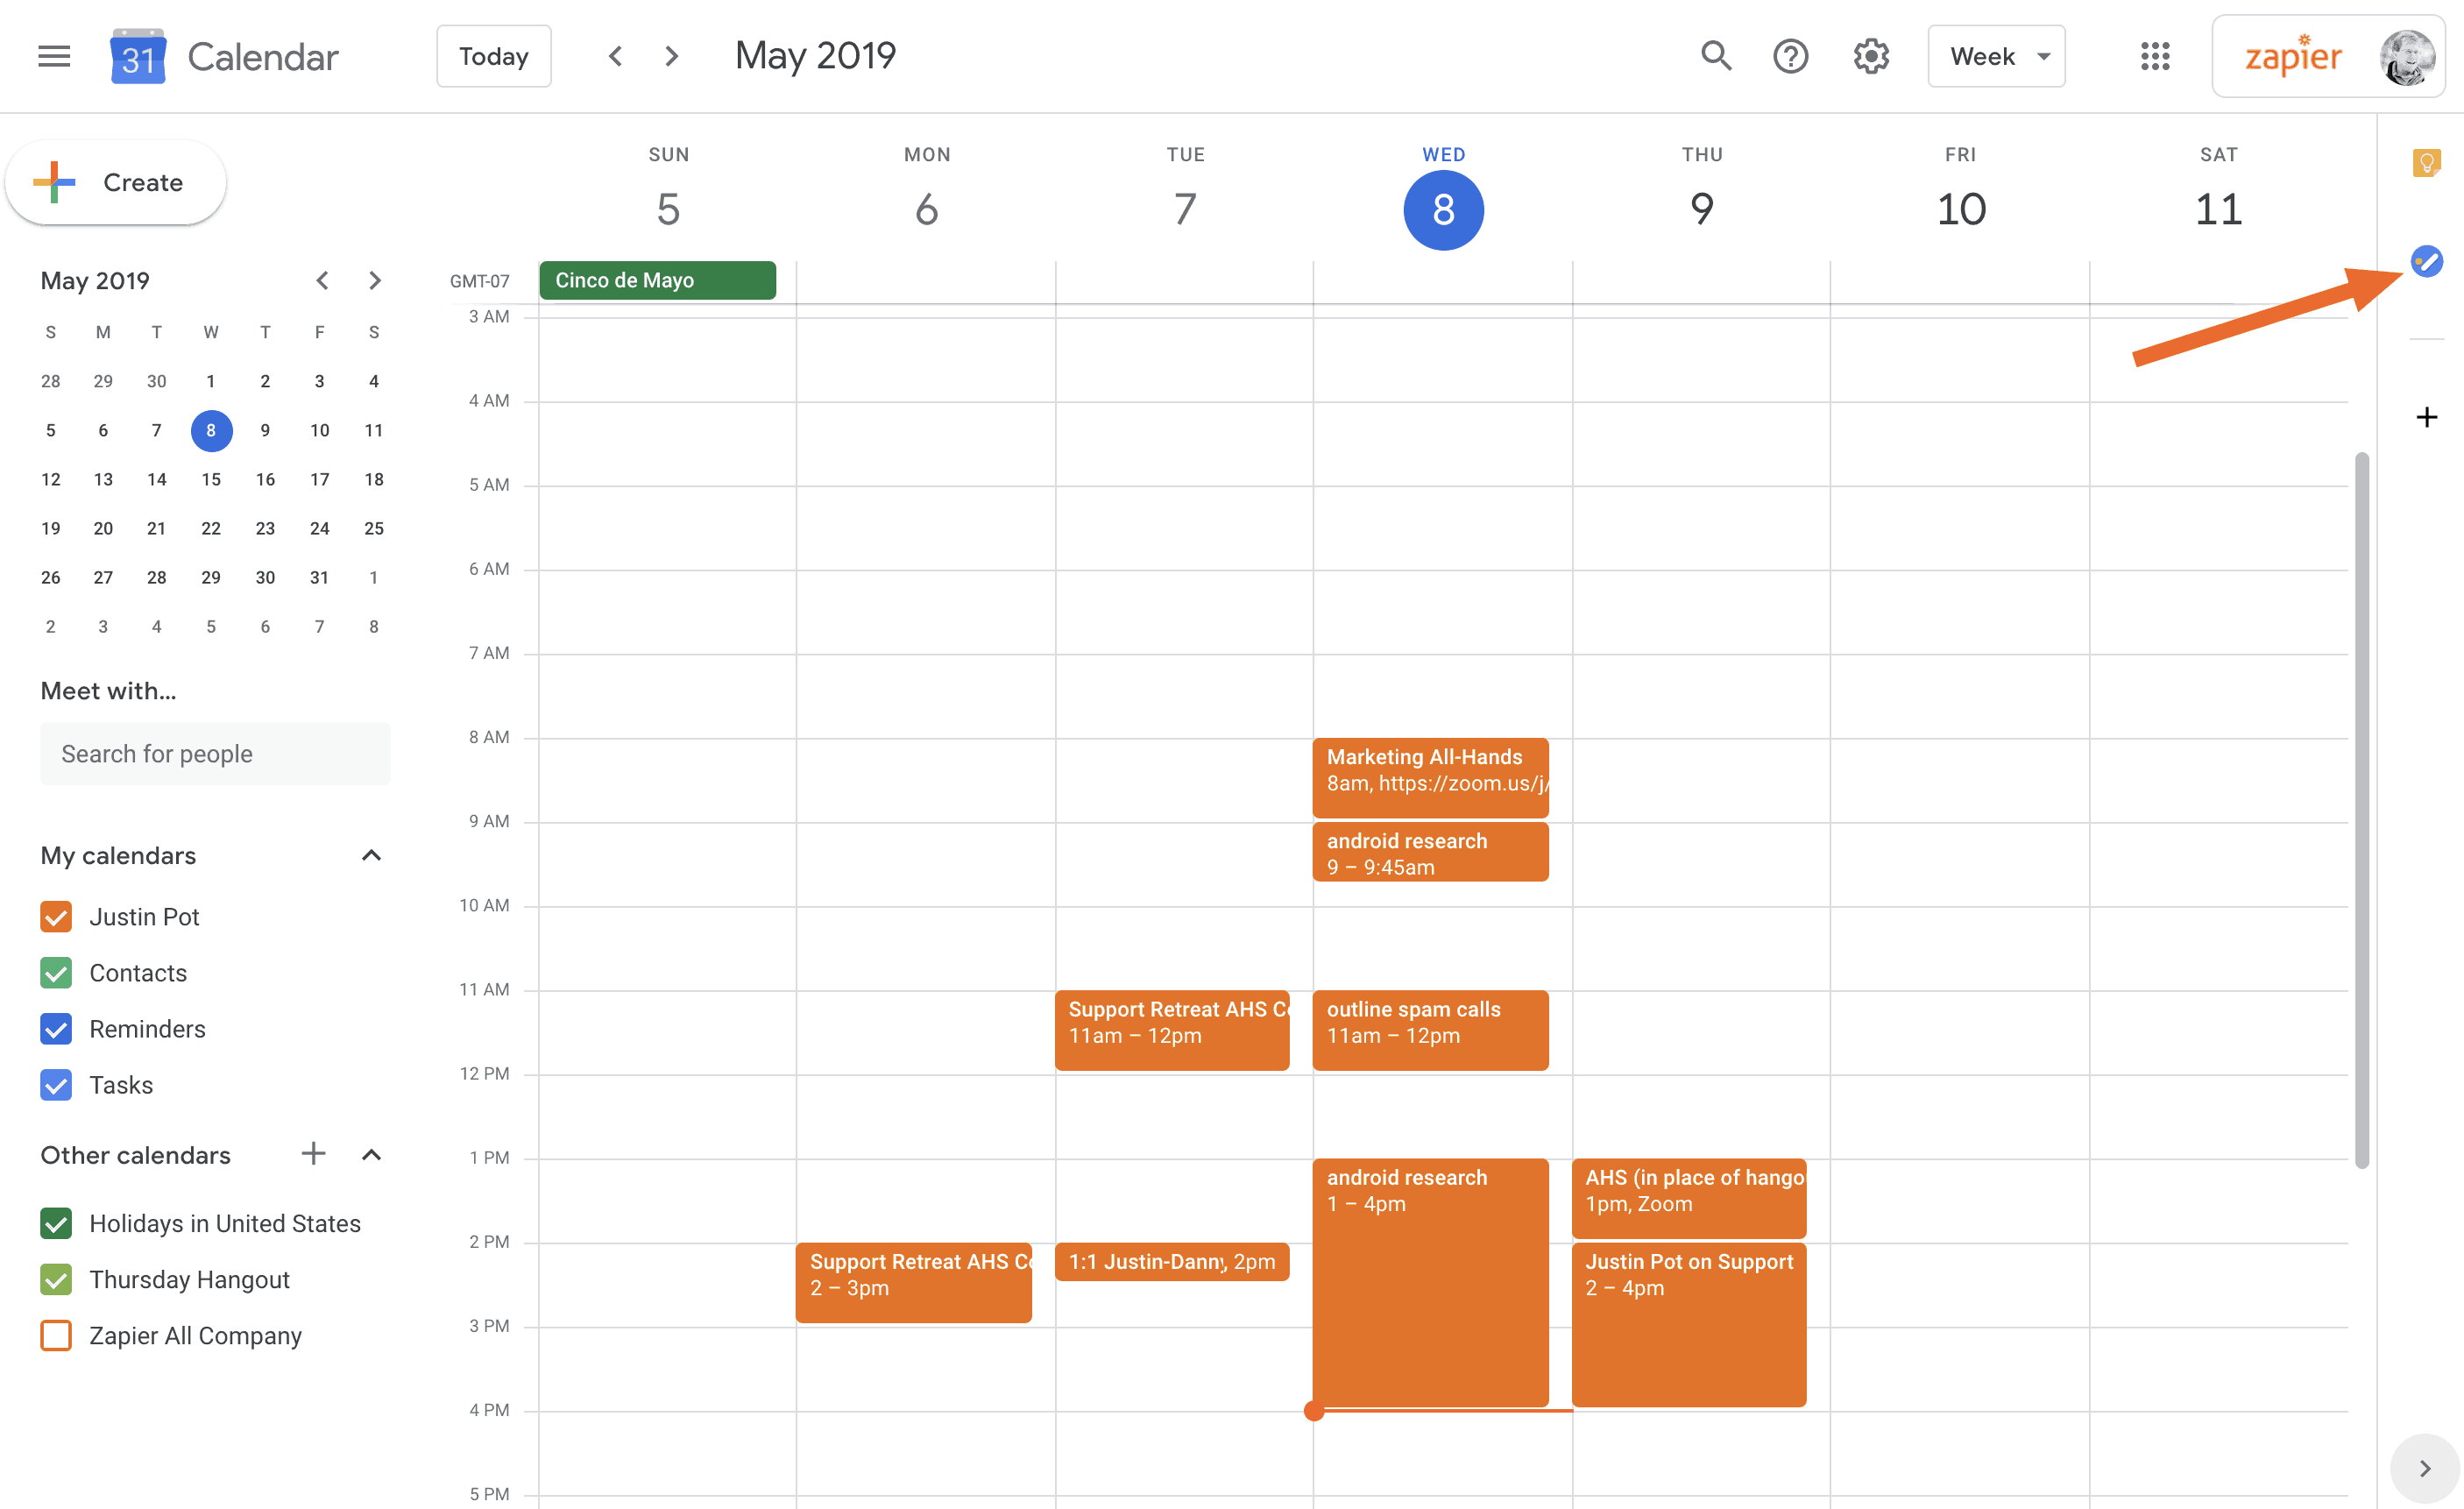 Google Calendar – 9 Ways To Make It The Ultimate Productivity Tool